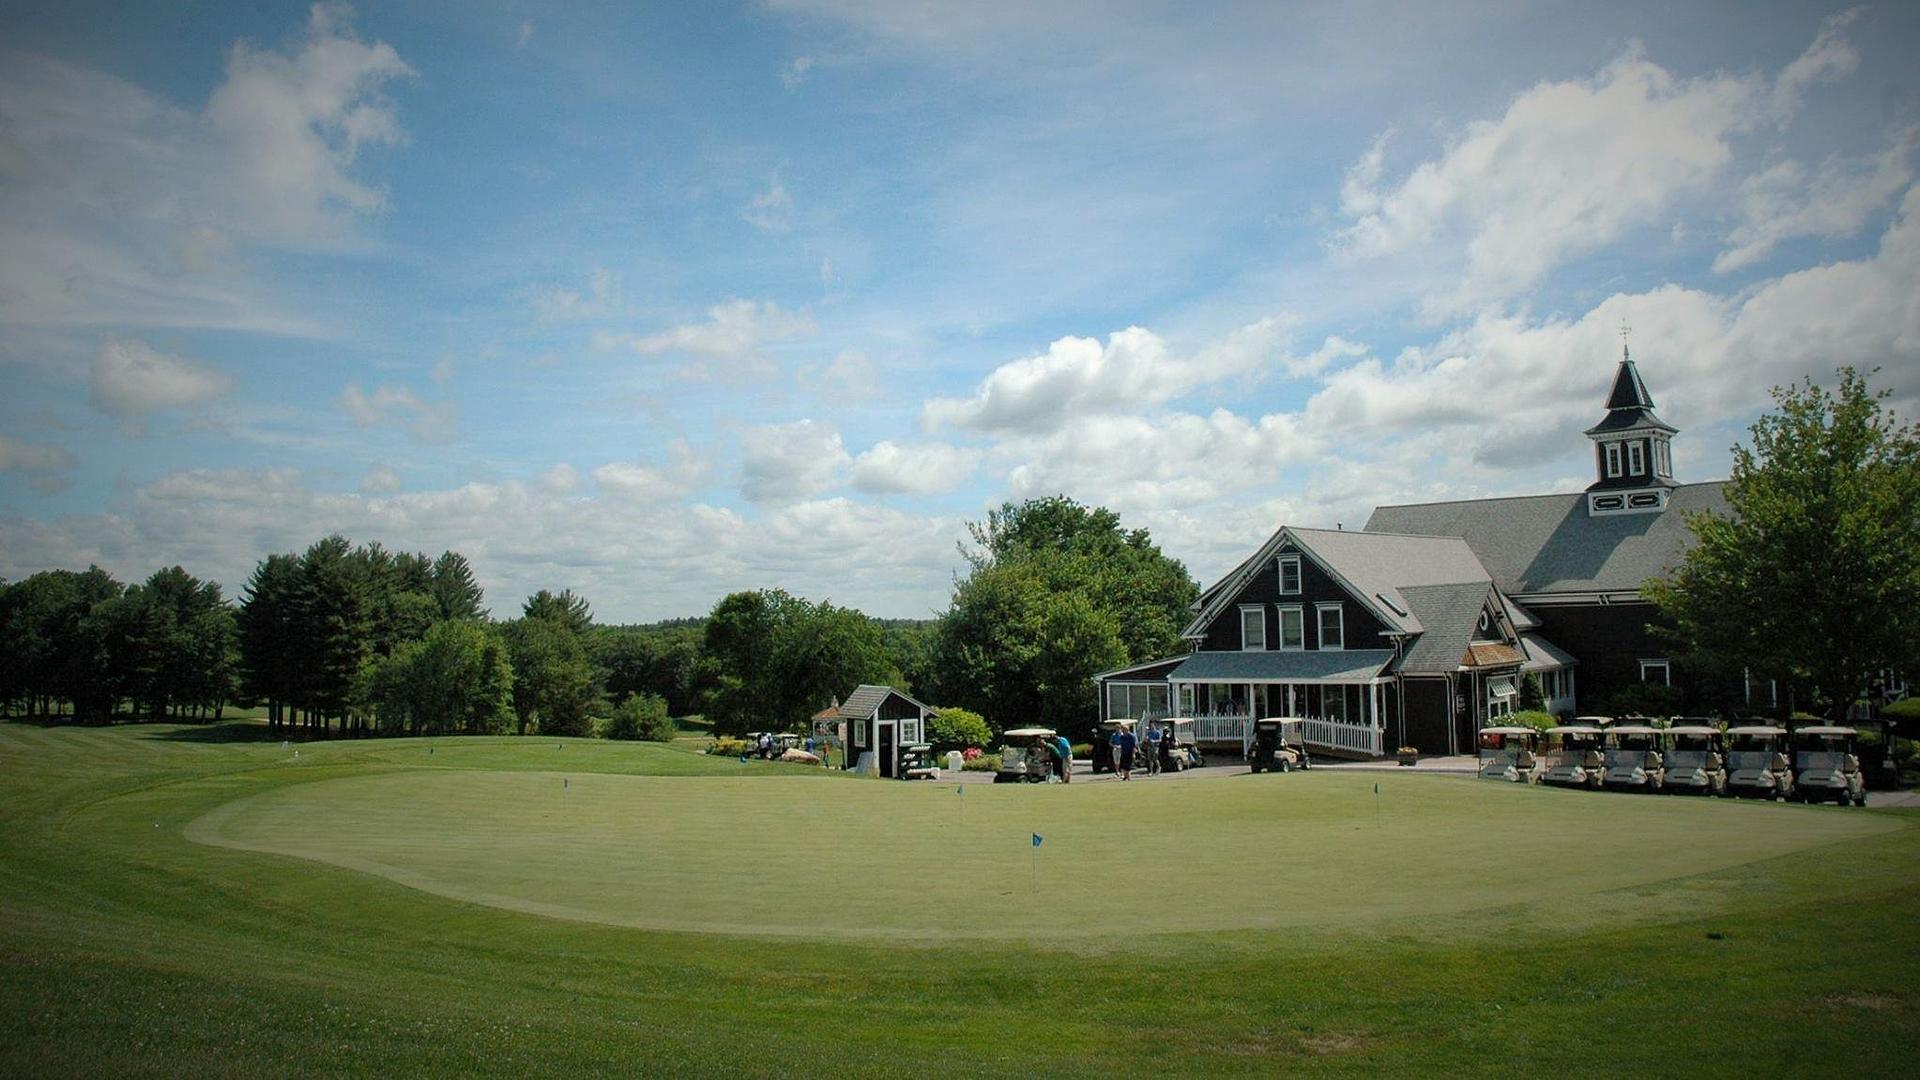 space at Blissful Meadows Golf Club